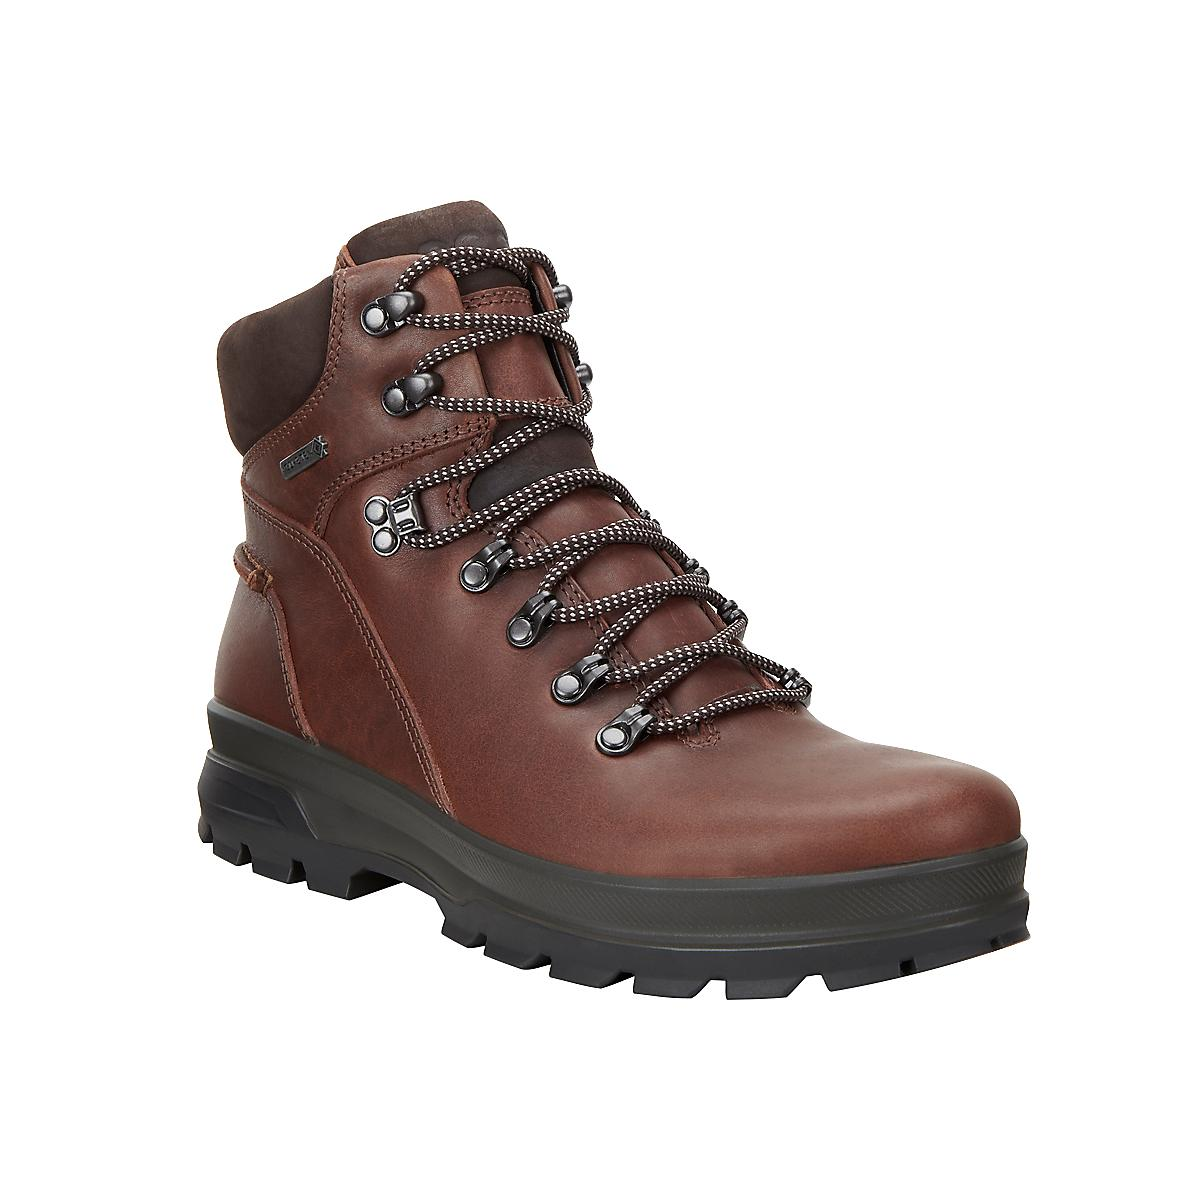 Men's ECCO�Rugged Track GTX Hig